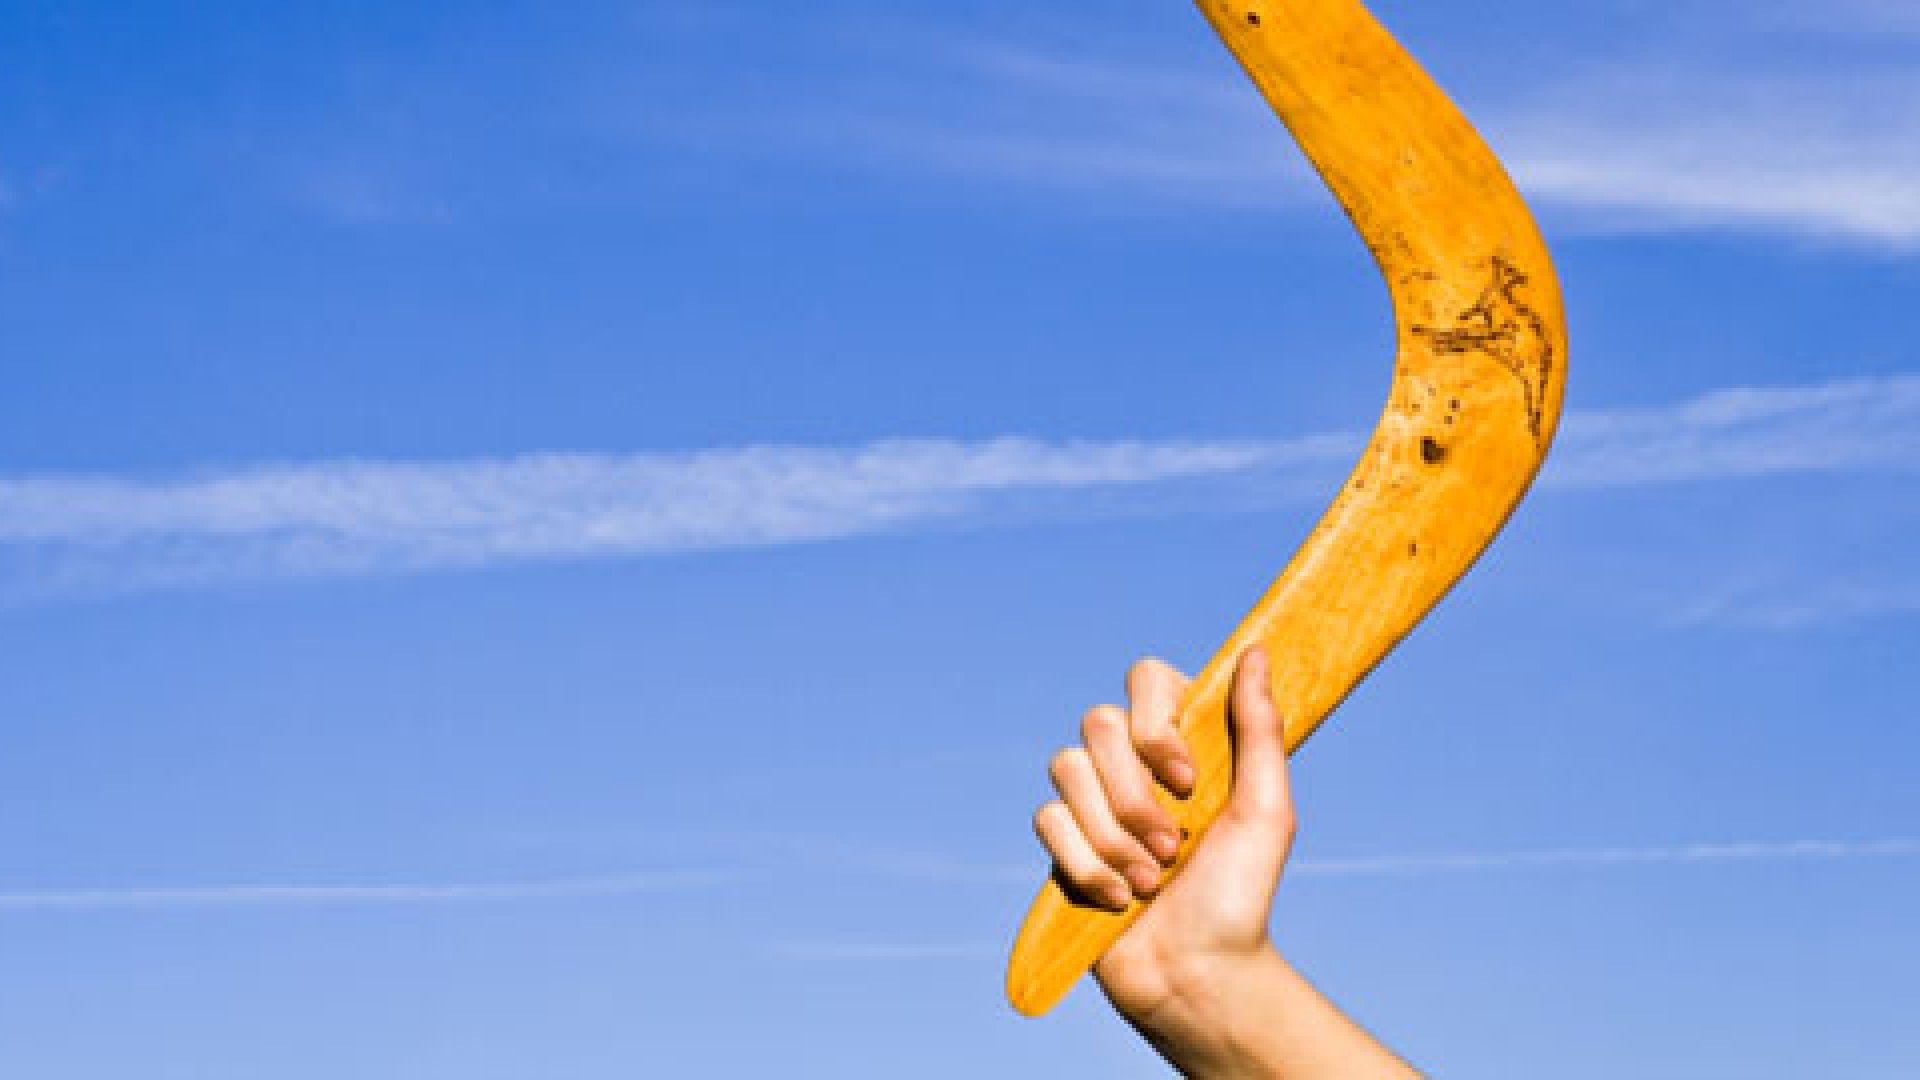 Do You Keep a Boomerang in Your Arsenal?